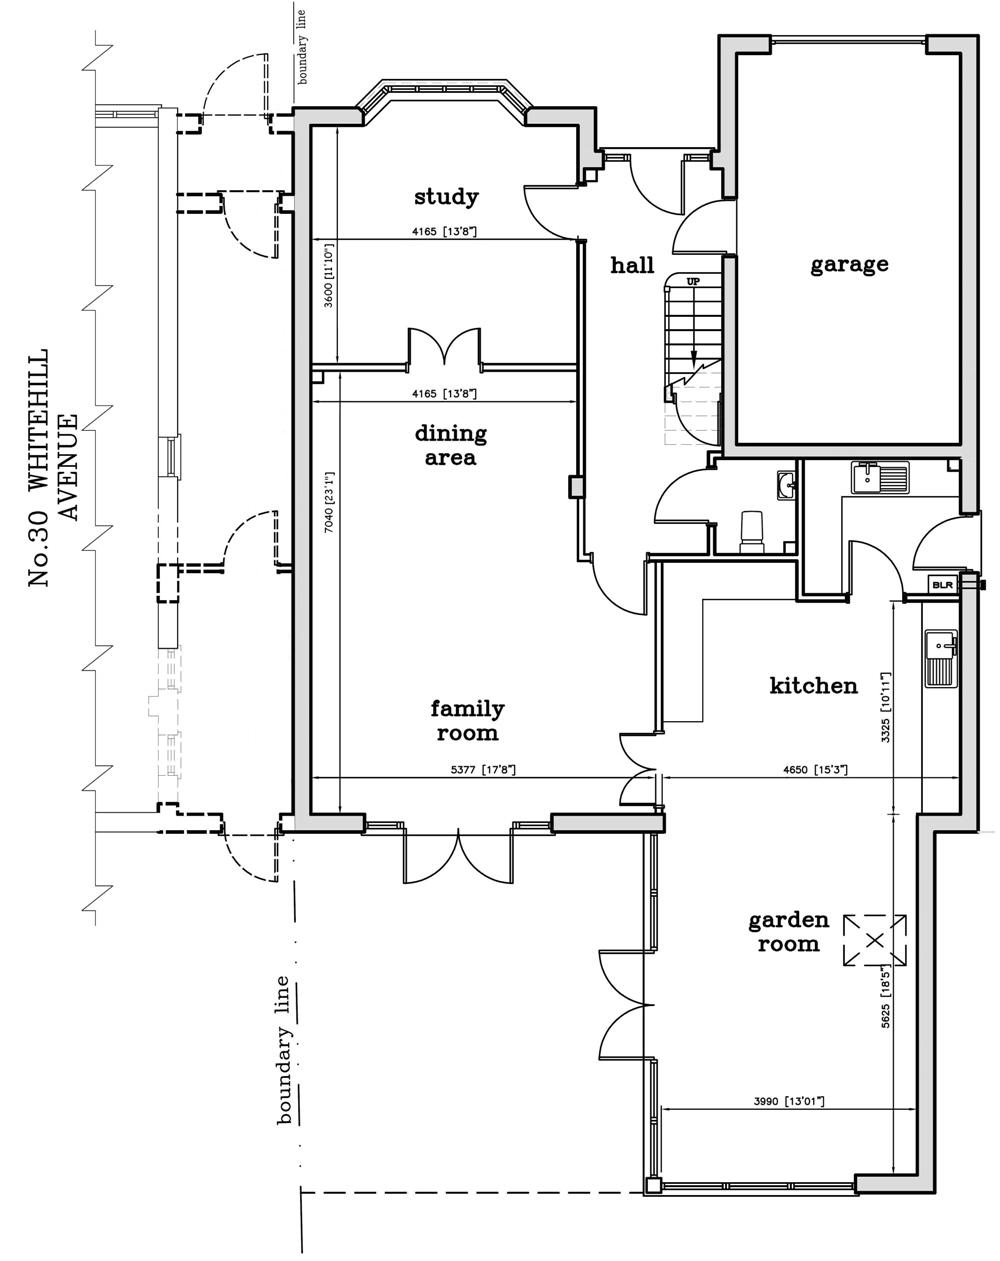 Mead estates ltd 32 whitehill avenue luton floor plans - Lay outs grond helling ...